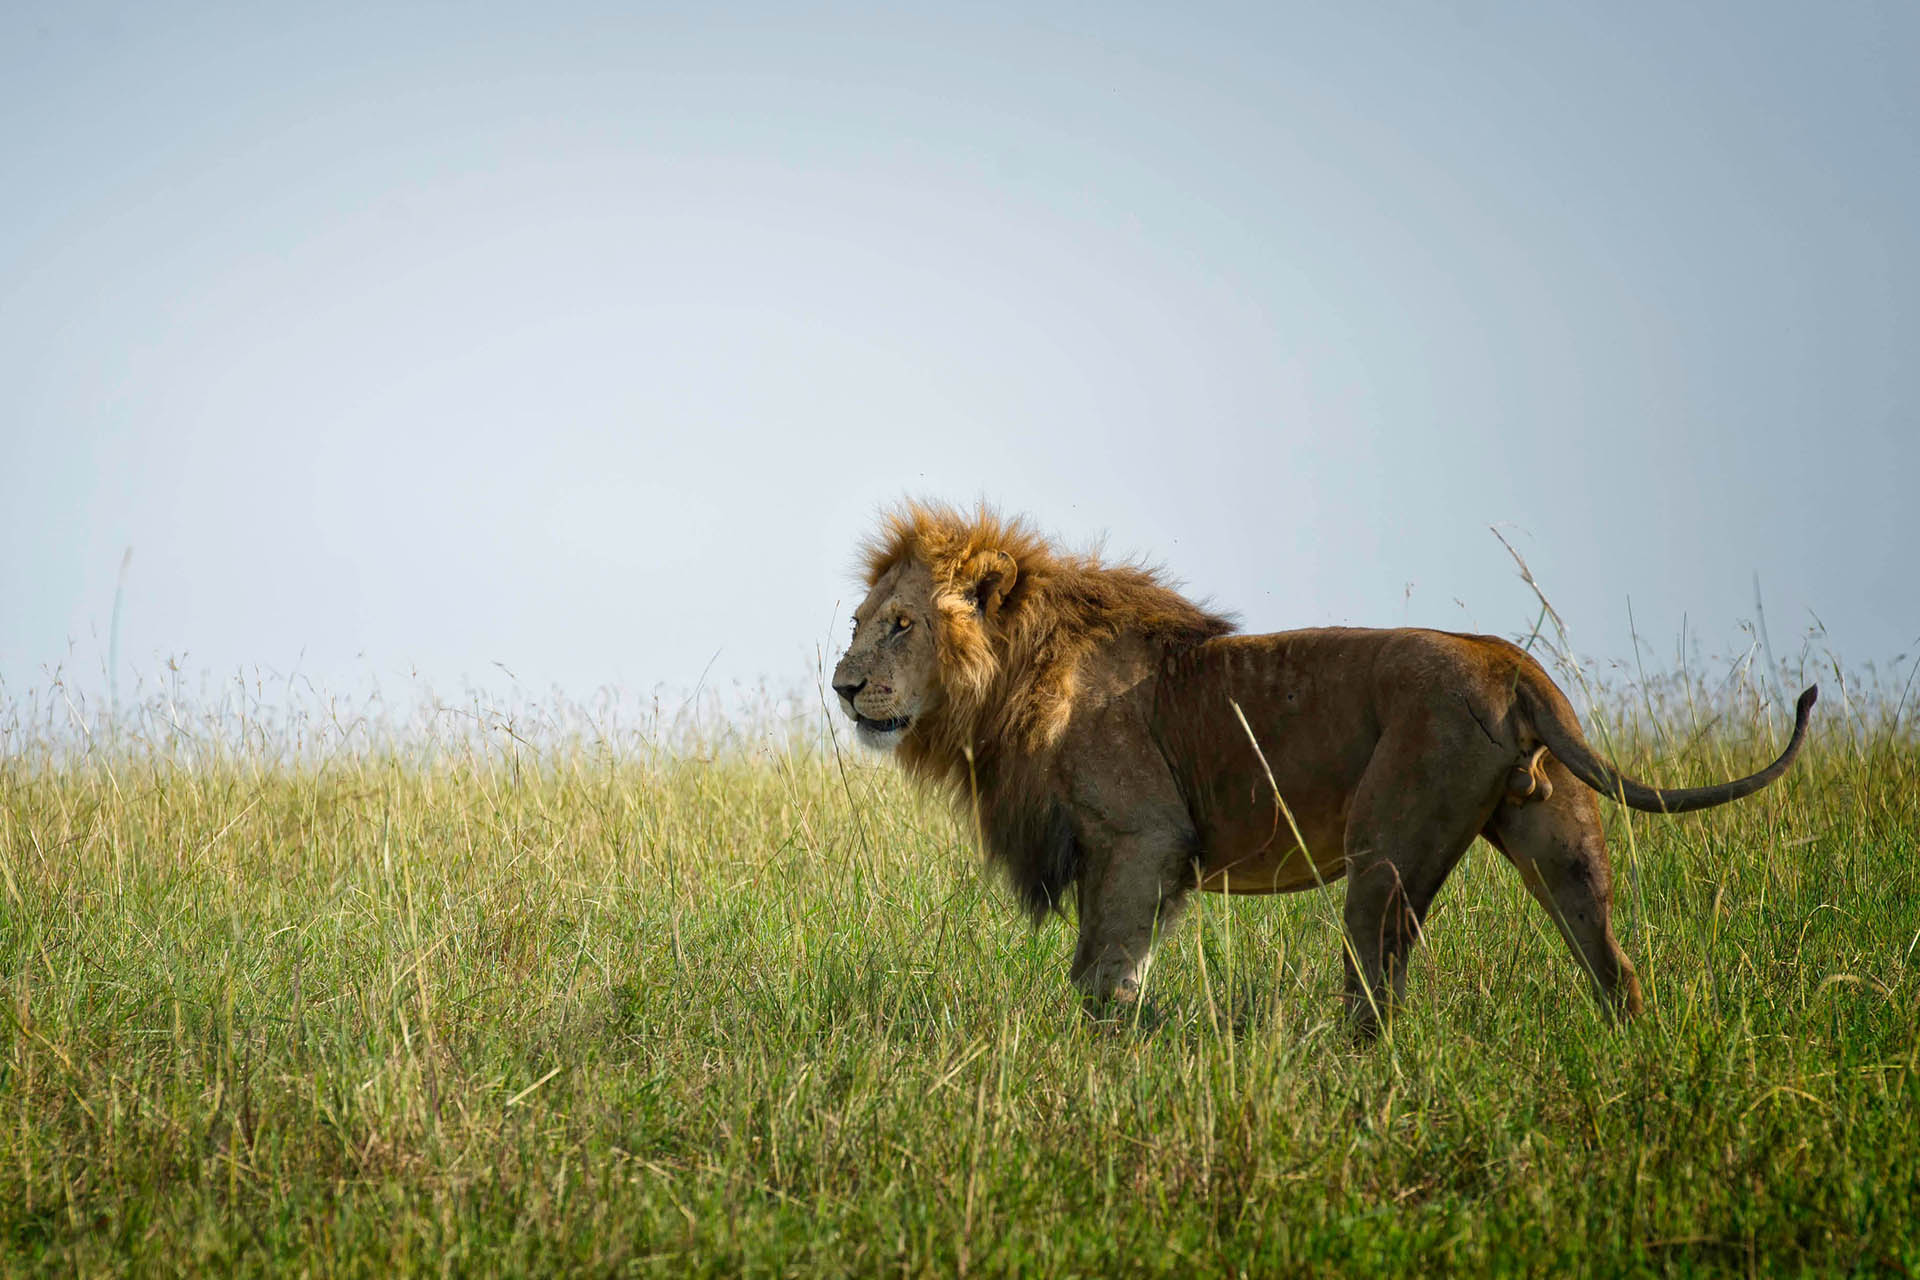 WildNas-Photography-signature-photo-safaris-maasai-wanderings-africa-wildlife-serengeti-lion